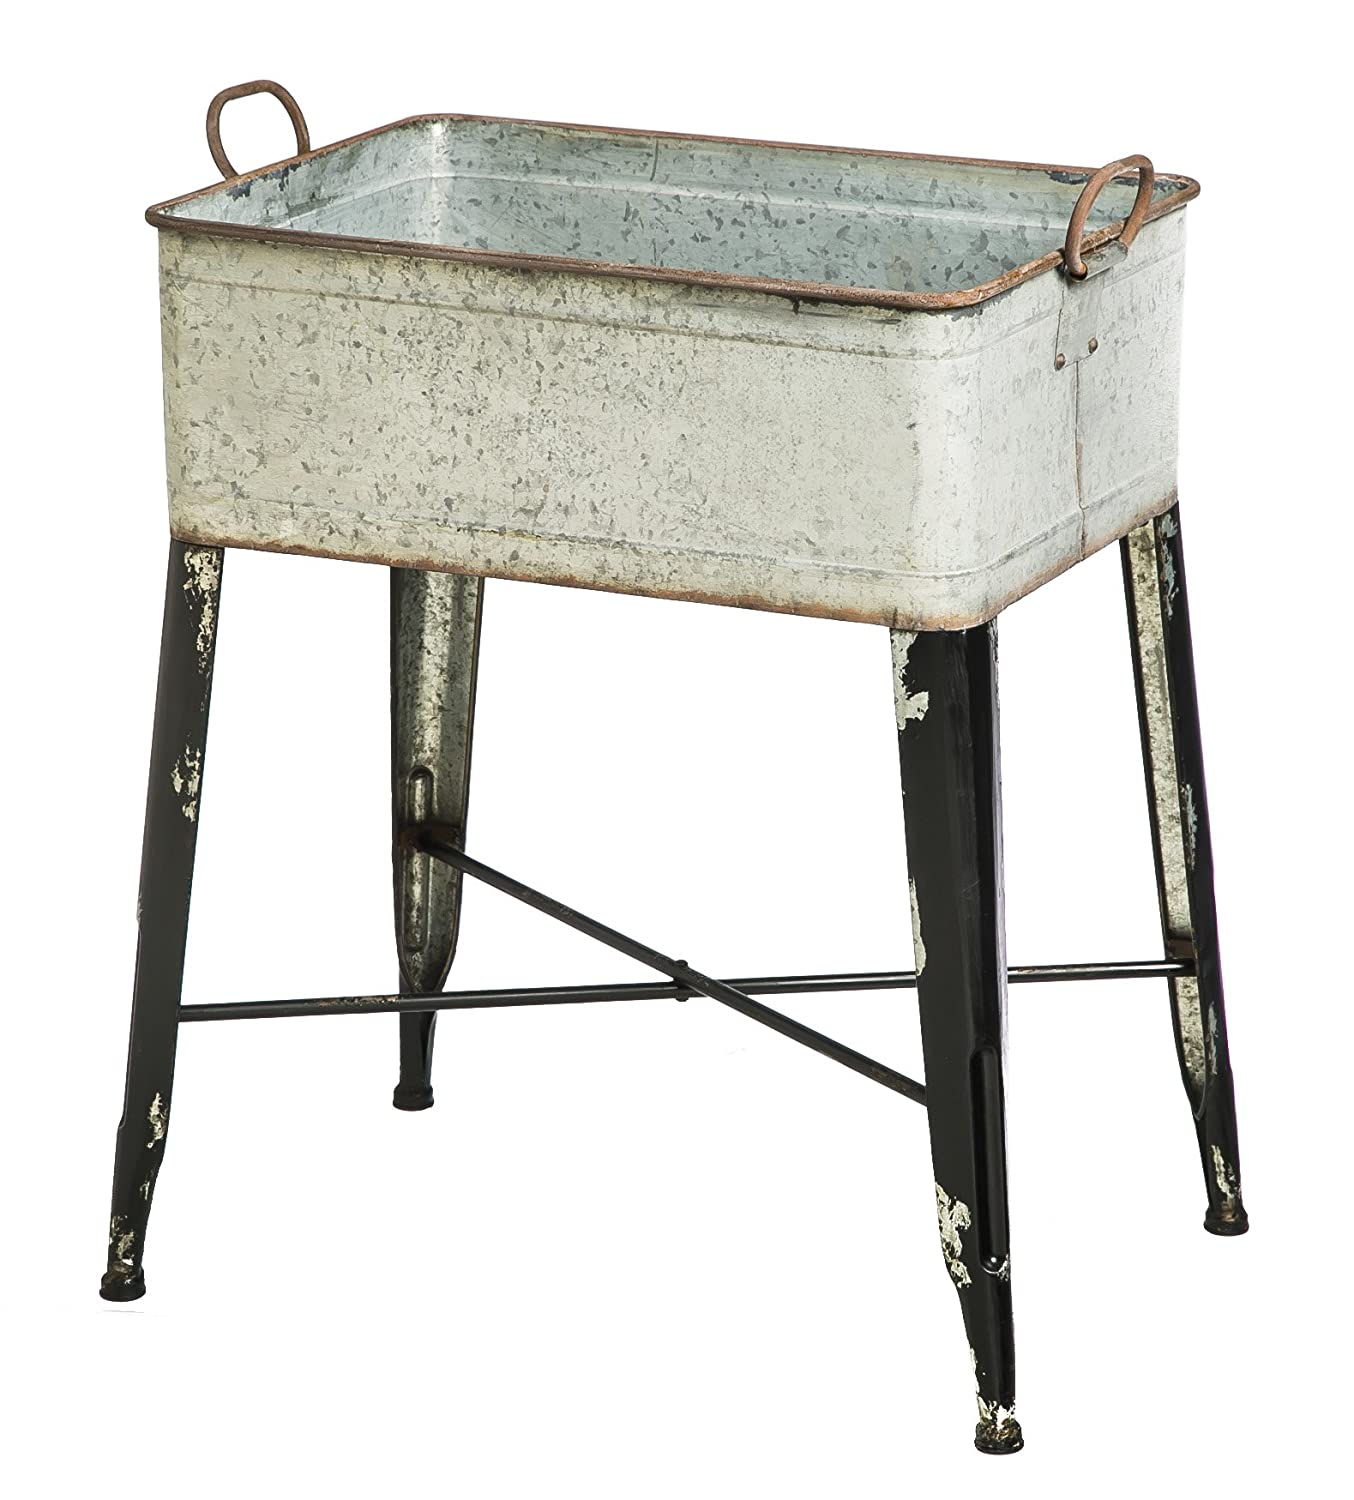 wash stand perryman with on tub imax youtube galvanized watch